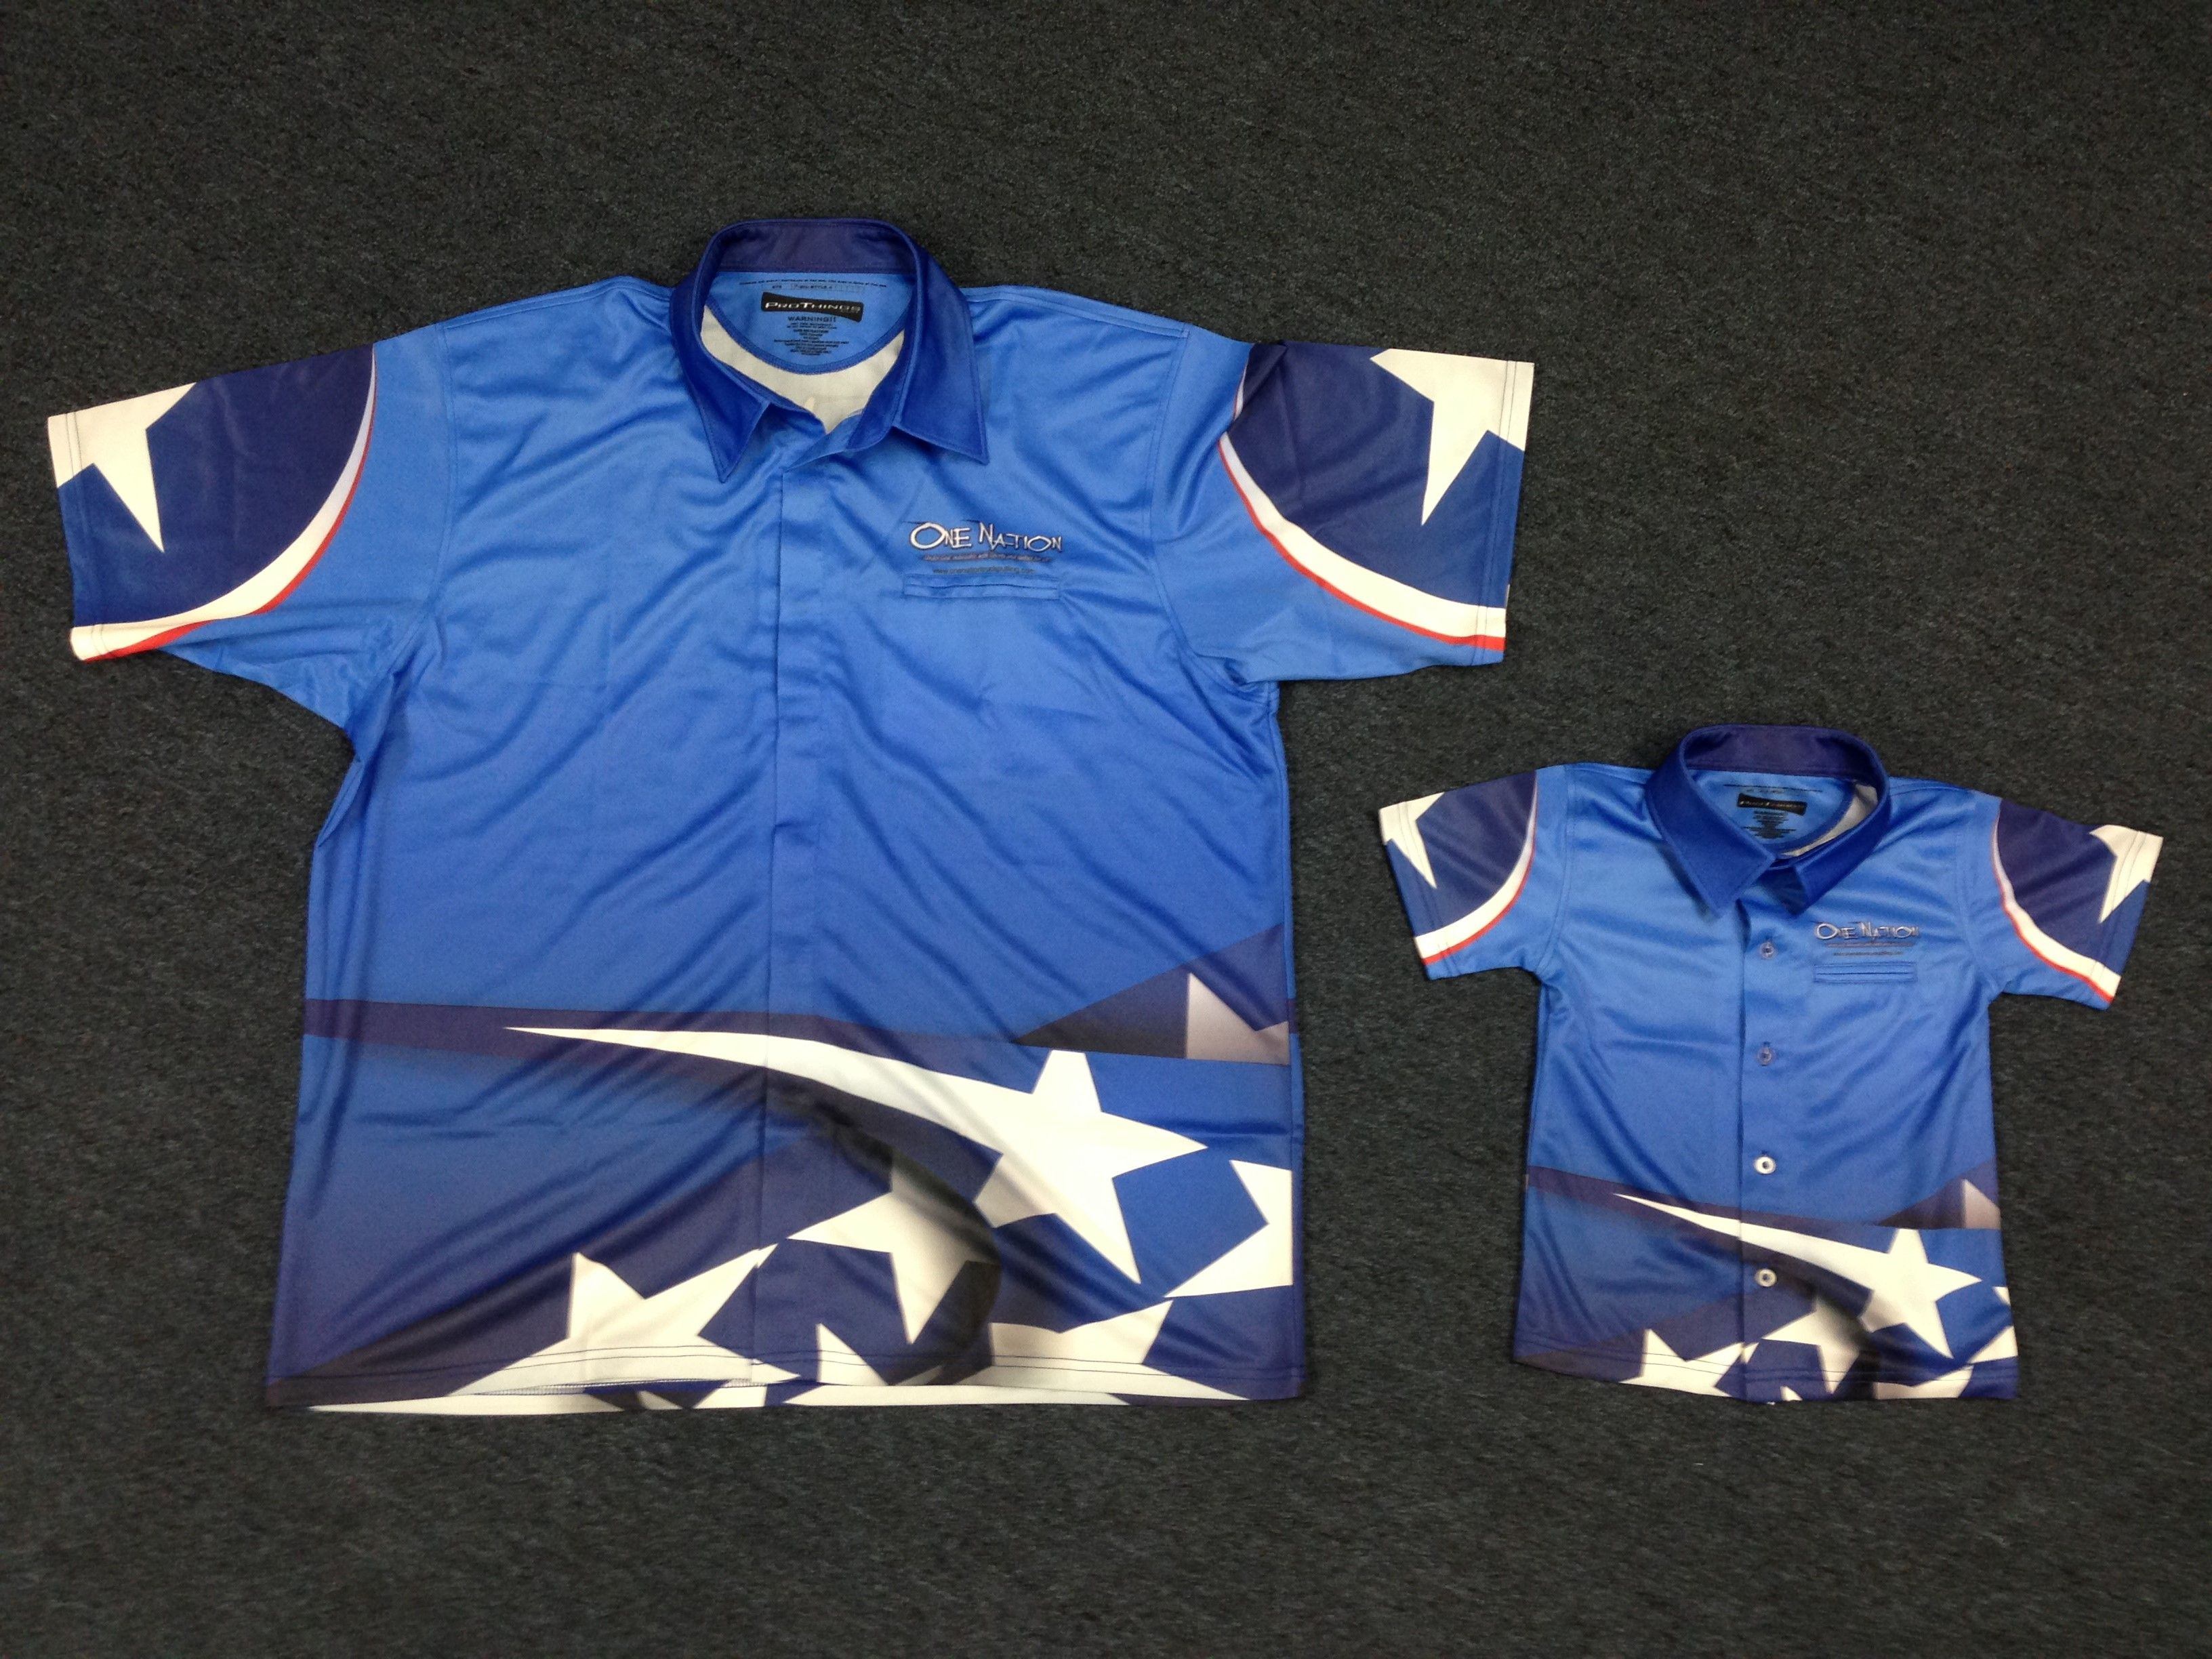 Sublimated Youth Racing Shirts To Match The Adults Custom